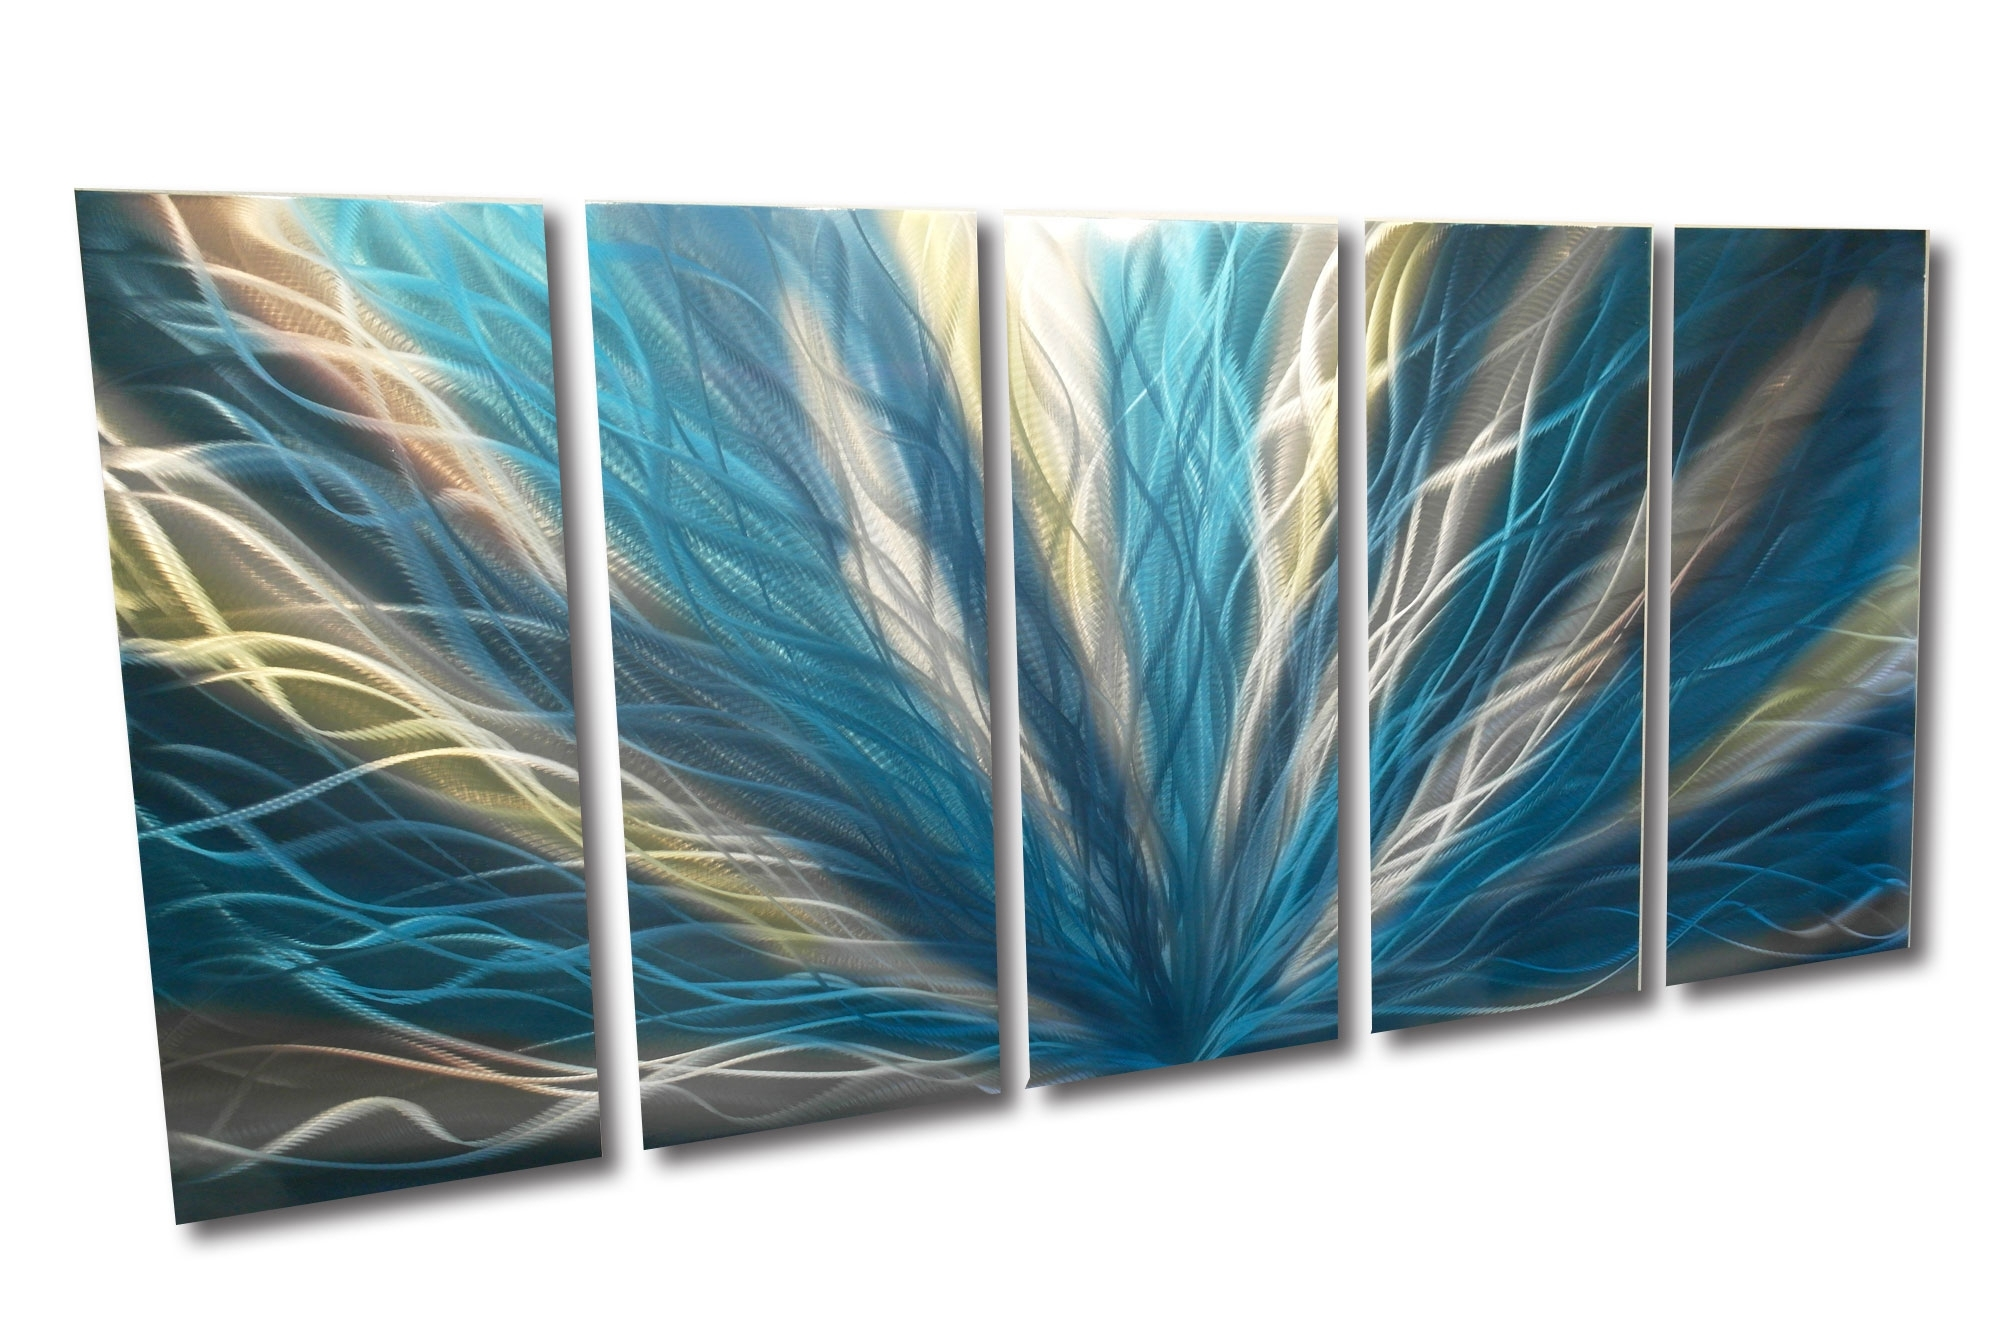 Radiance Teal 36X79 – Metal Wall Art Abstract Sculpture Modern Decor Pertaining To Current Teal And Brown Wall Art (View 12 of 20)